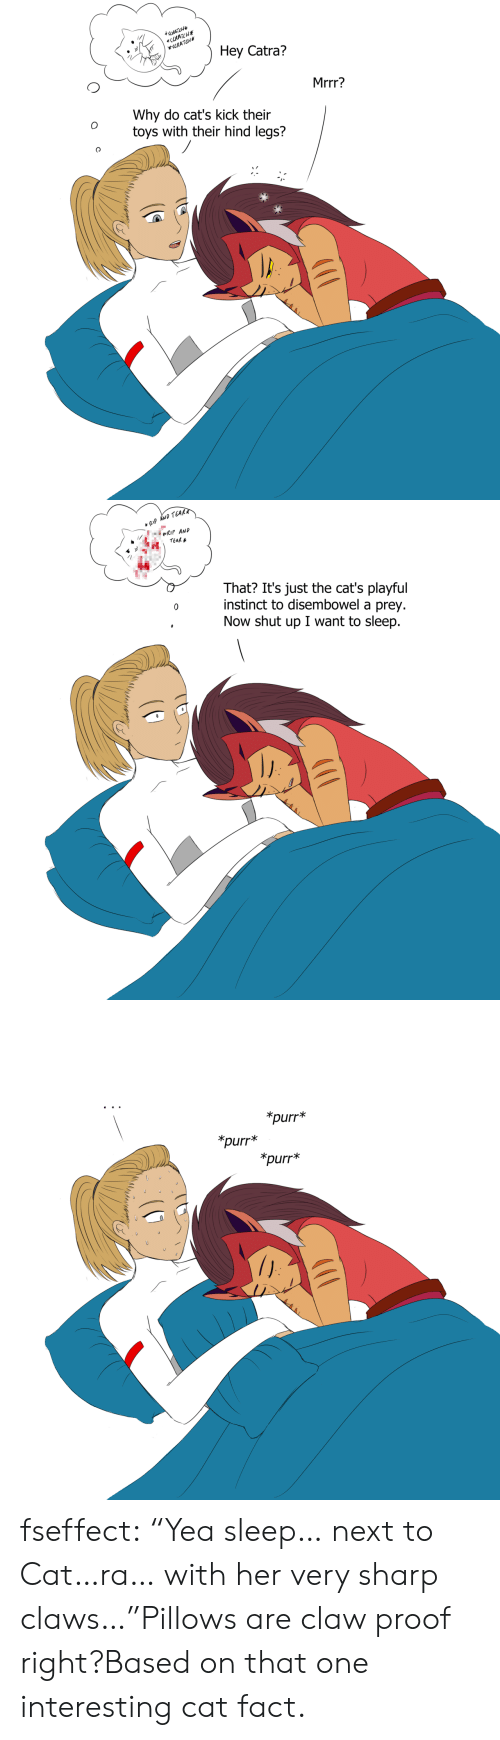 """hind: RATCH  <CCUATCH  *SRATUH  Hey Catra?  Mrrr?  Why do cat's kick their  toys with their hind legs?   Ip AND TEAR  RIP AND  TEAR  That? It's just the cat's playful  instinct to disembowel a prey.  Now shut up I want to sleep  O   *purr*  *purr  *purr* fseffect:  """"Yea sleep… next to Cat…ra… with her very sharp claws…""""Pillows are claw proof right?Based on that one interesting cat fact."""